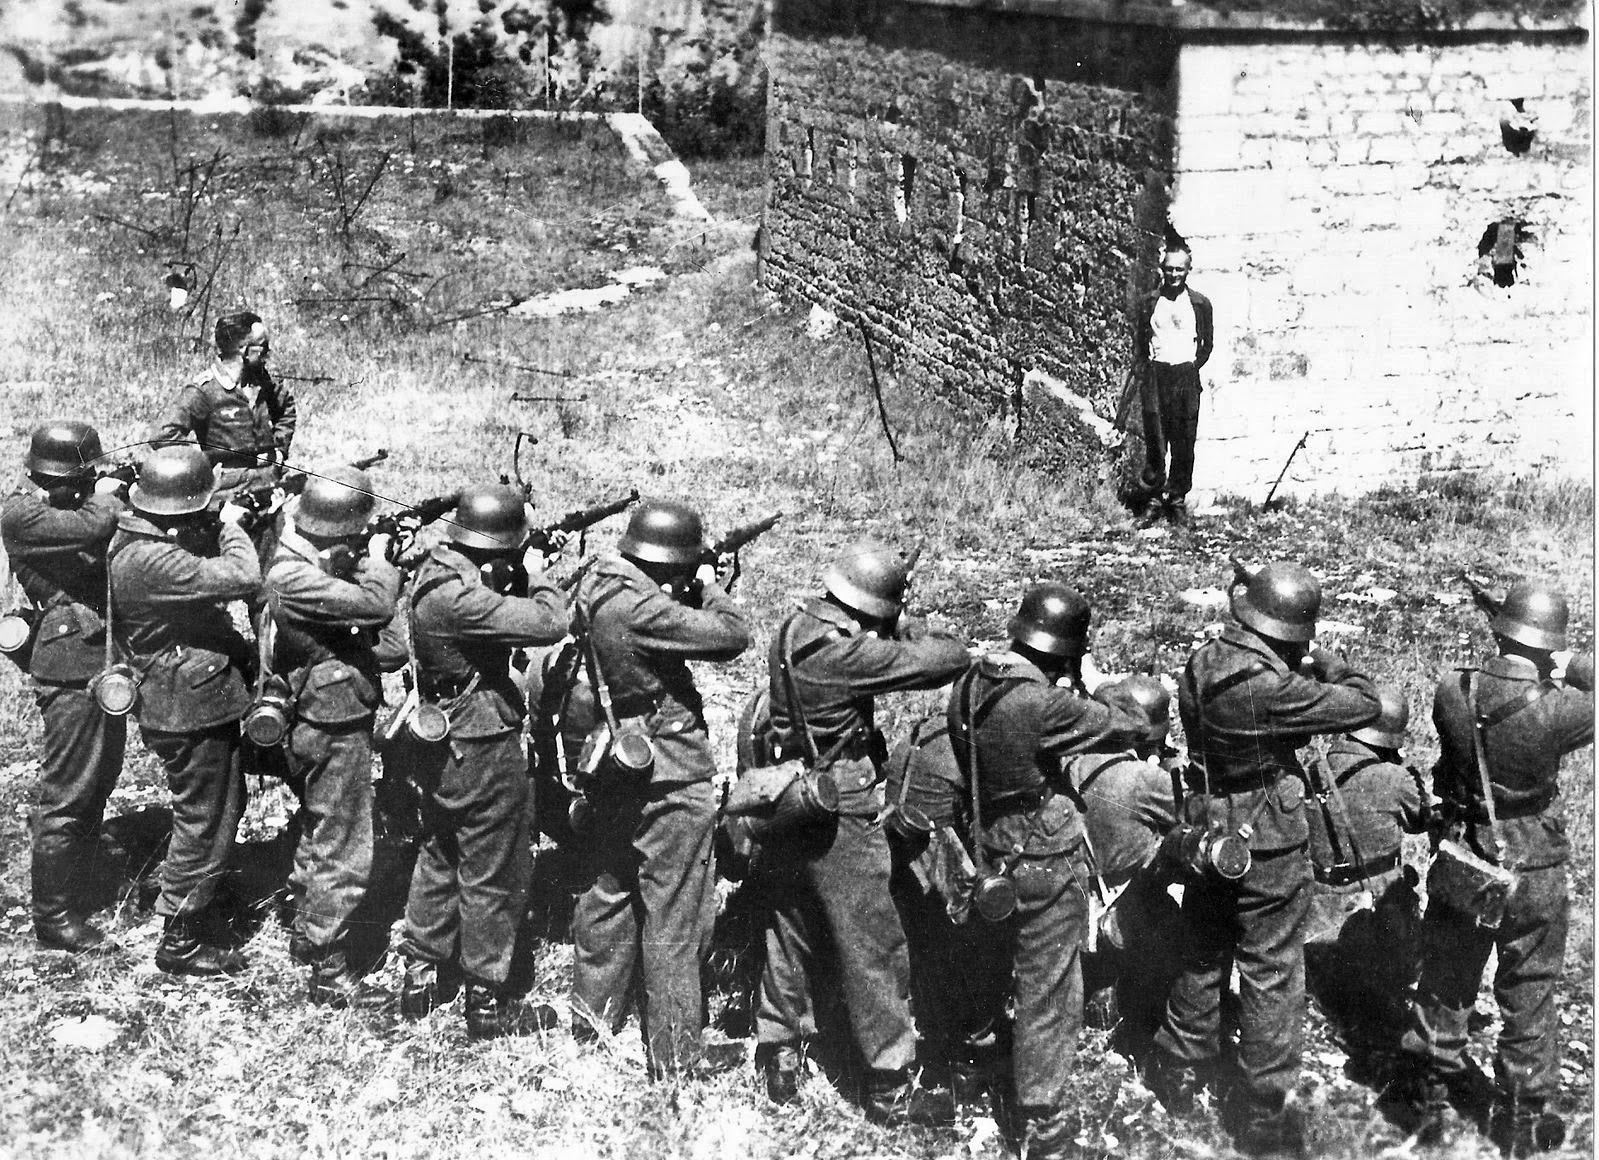 Georges Blind, a member of the French resistance, smiling at a German firing squad, October 1944